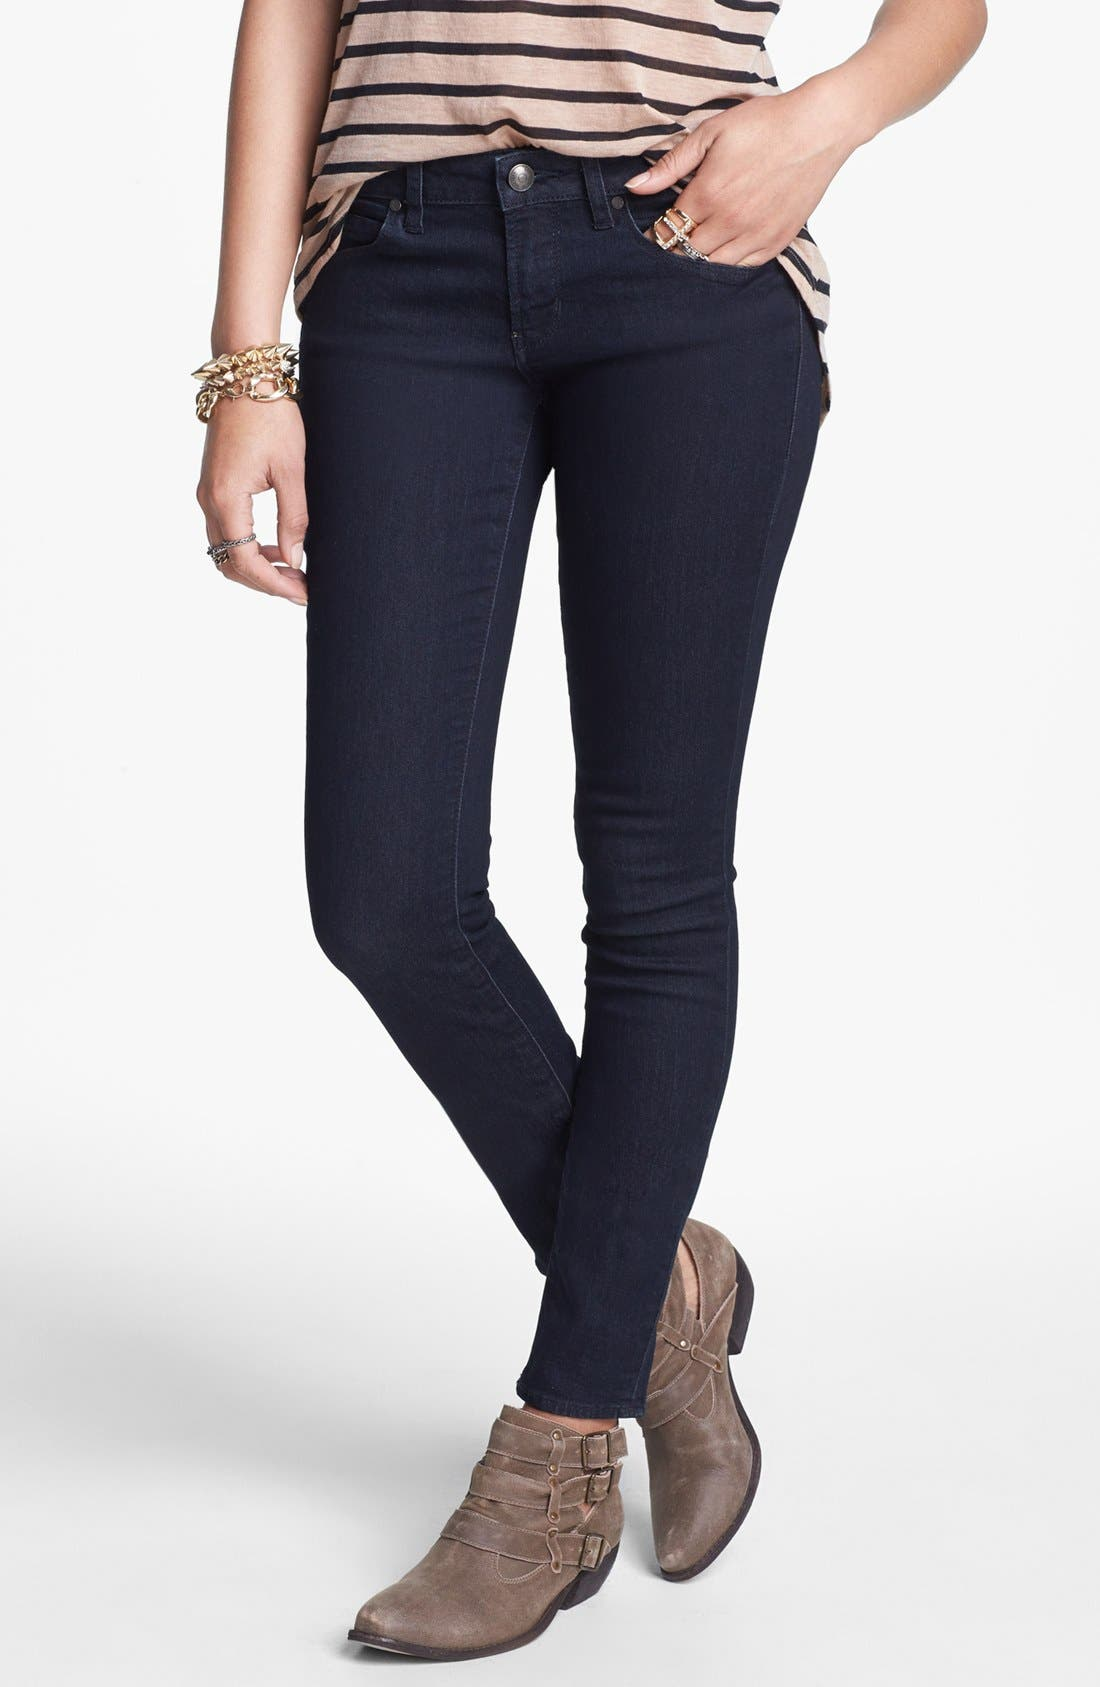 Alternate Image 1 Selected - Articles of Society 'Lana' Skinny Jeans (Dark) (Juniors)